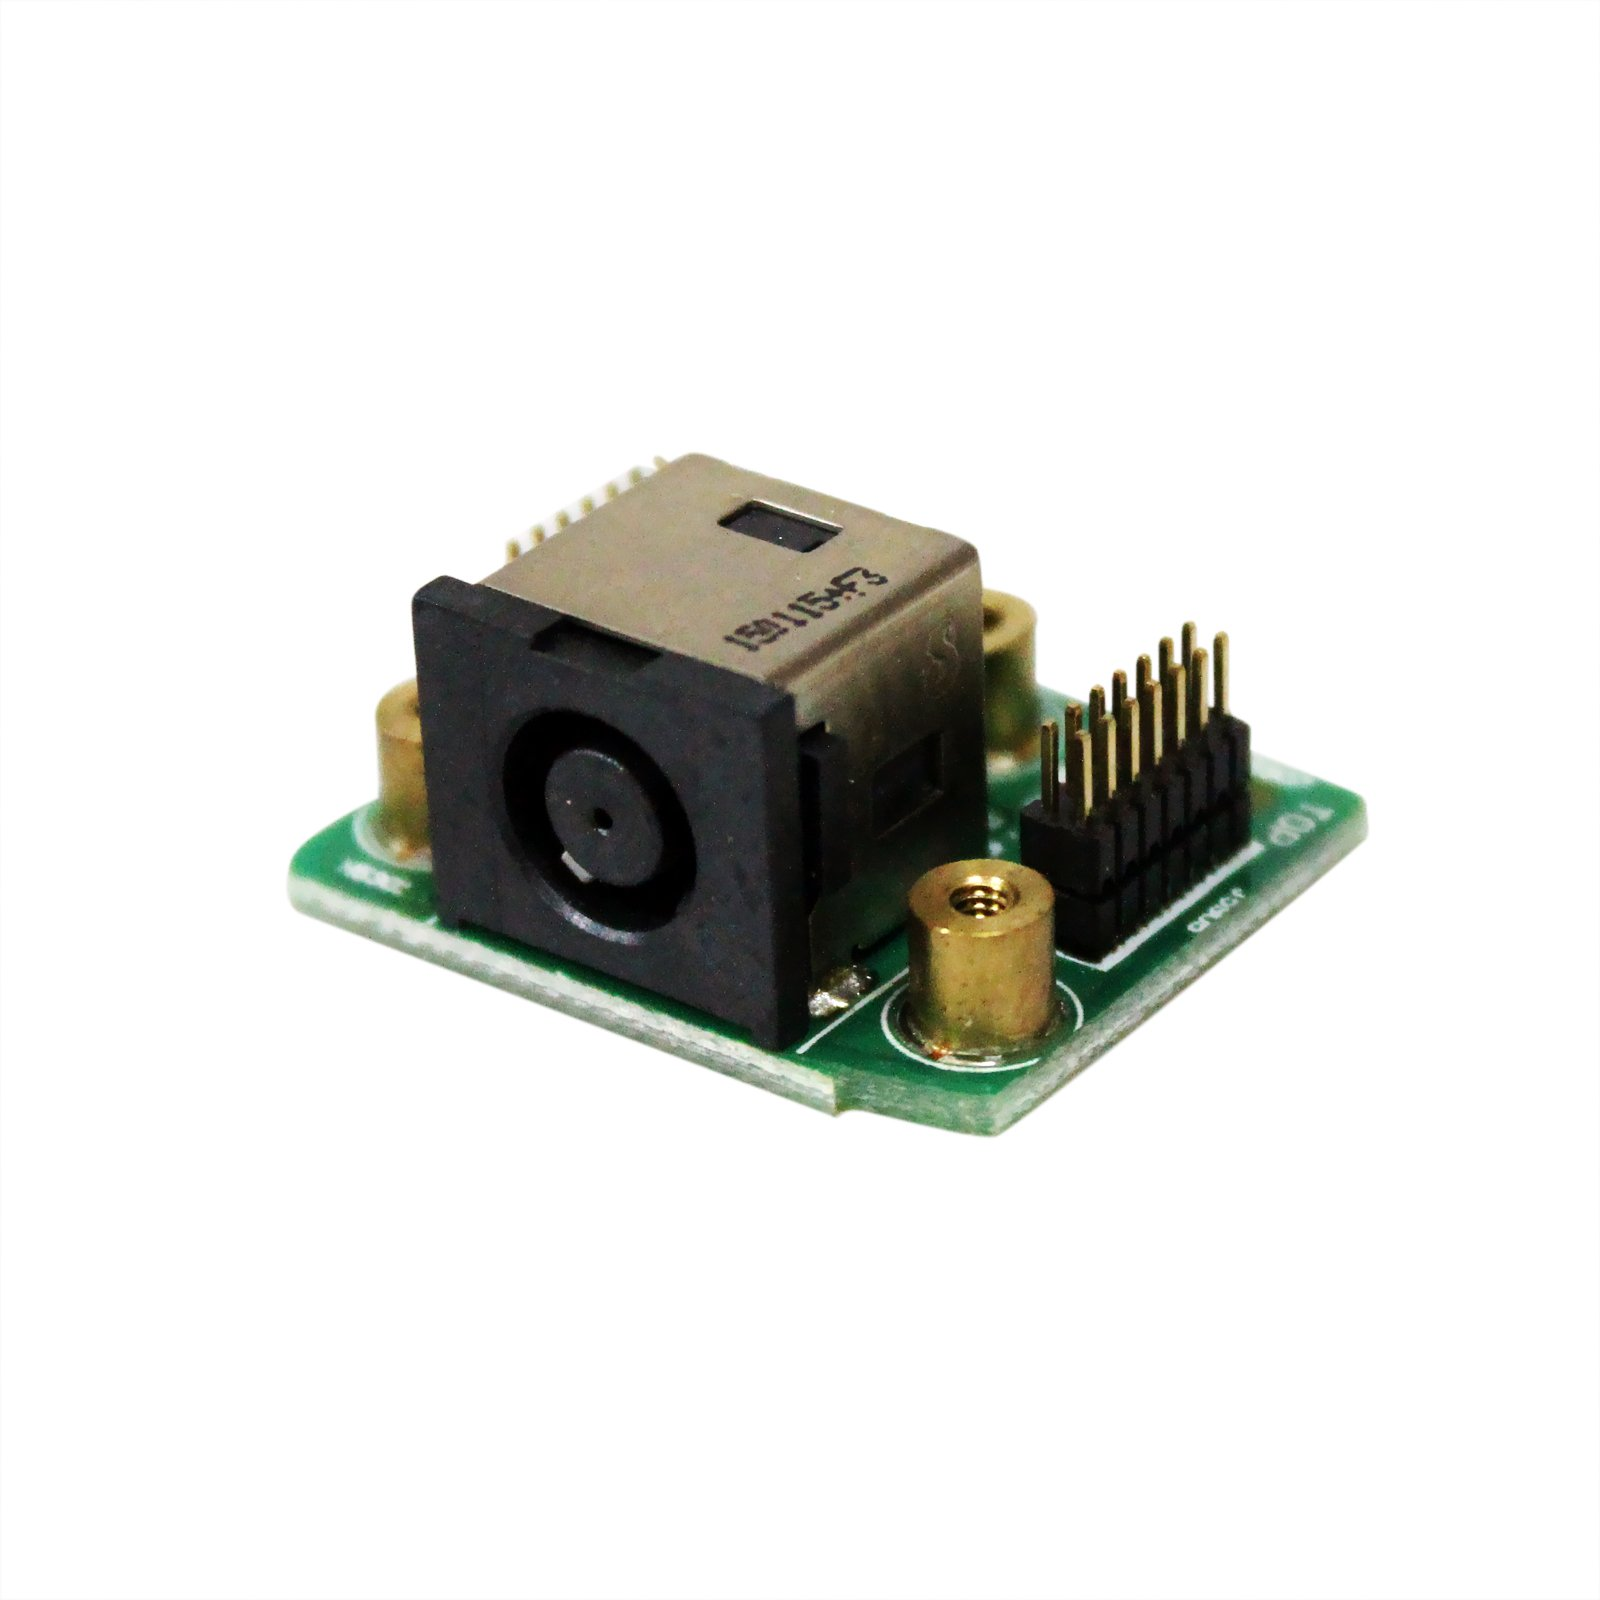 GinTai DC Power Jack Board Replacement for Asus G750JZ-XS72 G750JZ-17FA G750JZ-QB71 G750JH-DB72-CA G750JZ-DB73-CAC